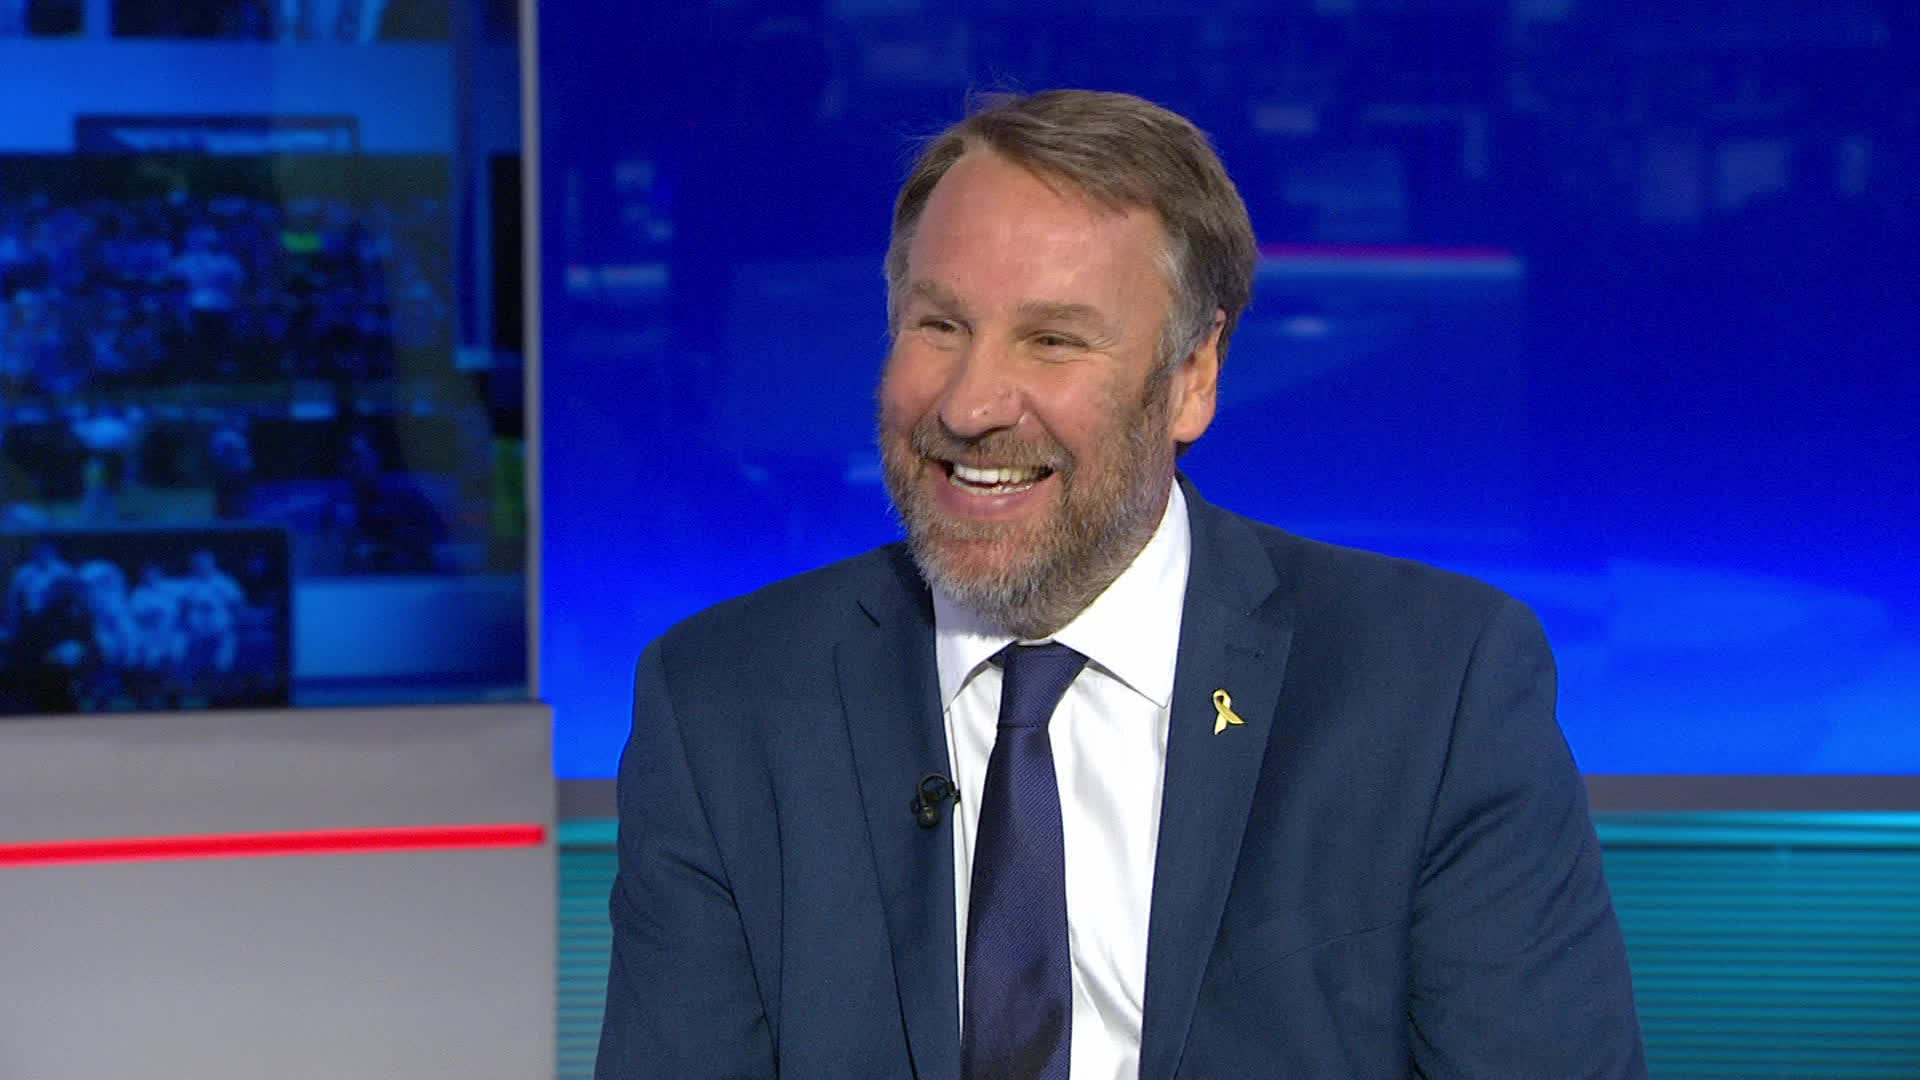 Paul Merson has claimed Arsenal are favourites for the NLD